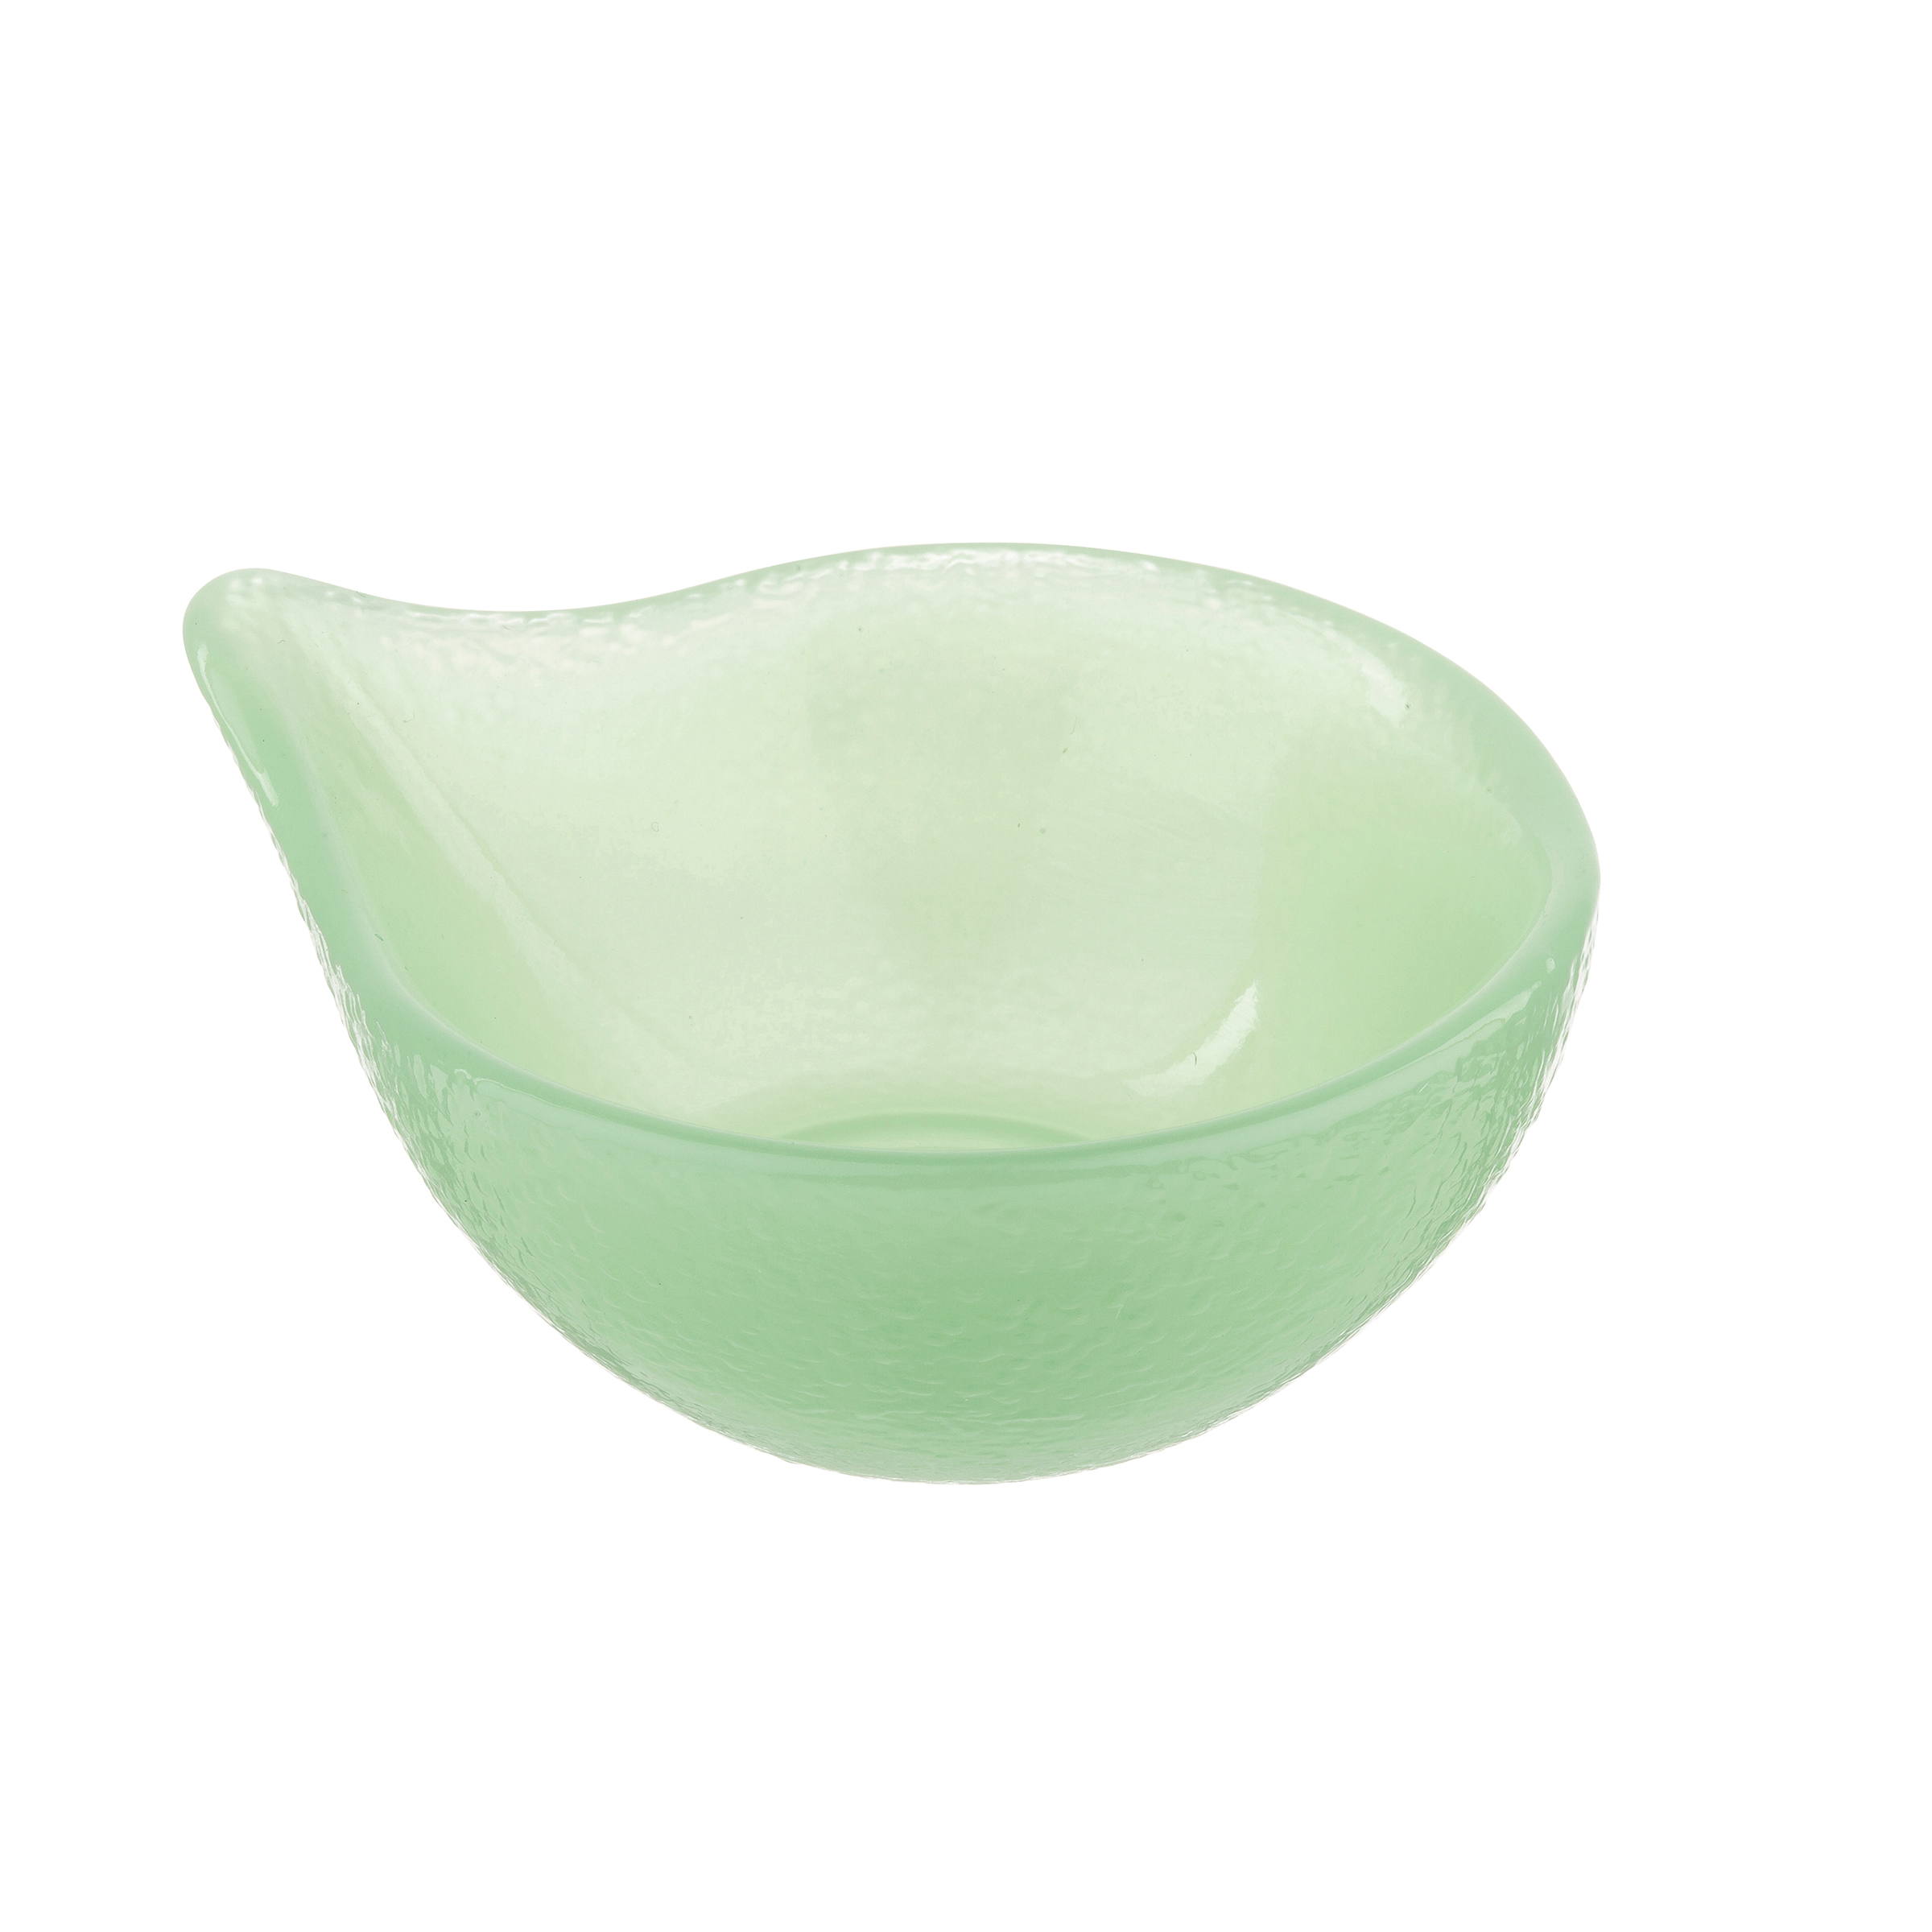 Sauce Cup Jadeite from our Jadeite Collection